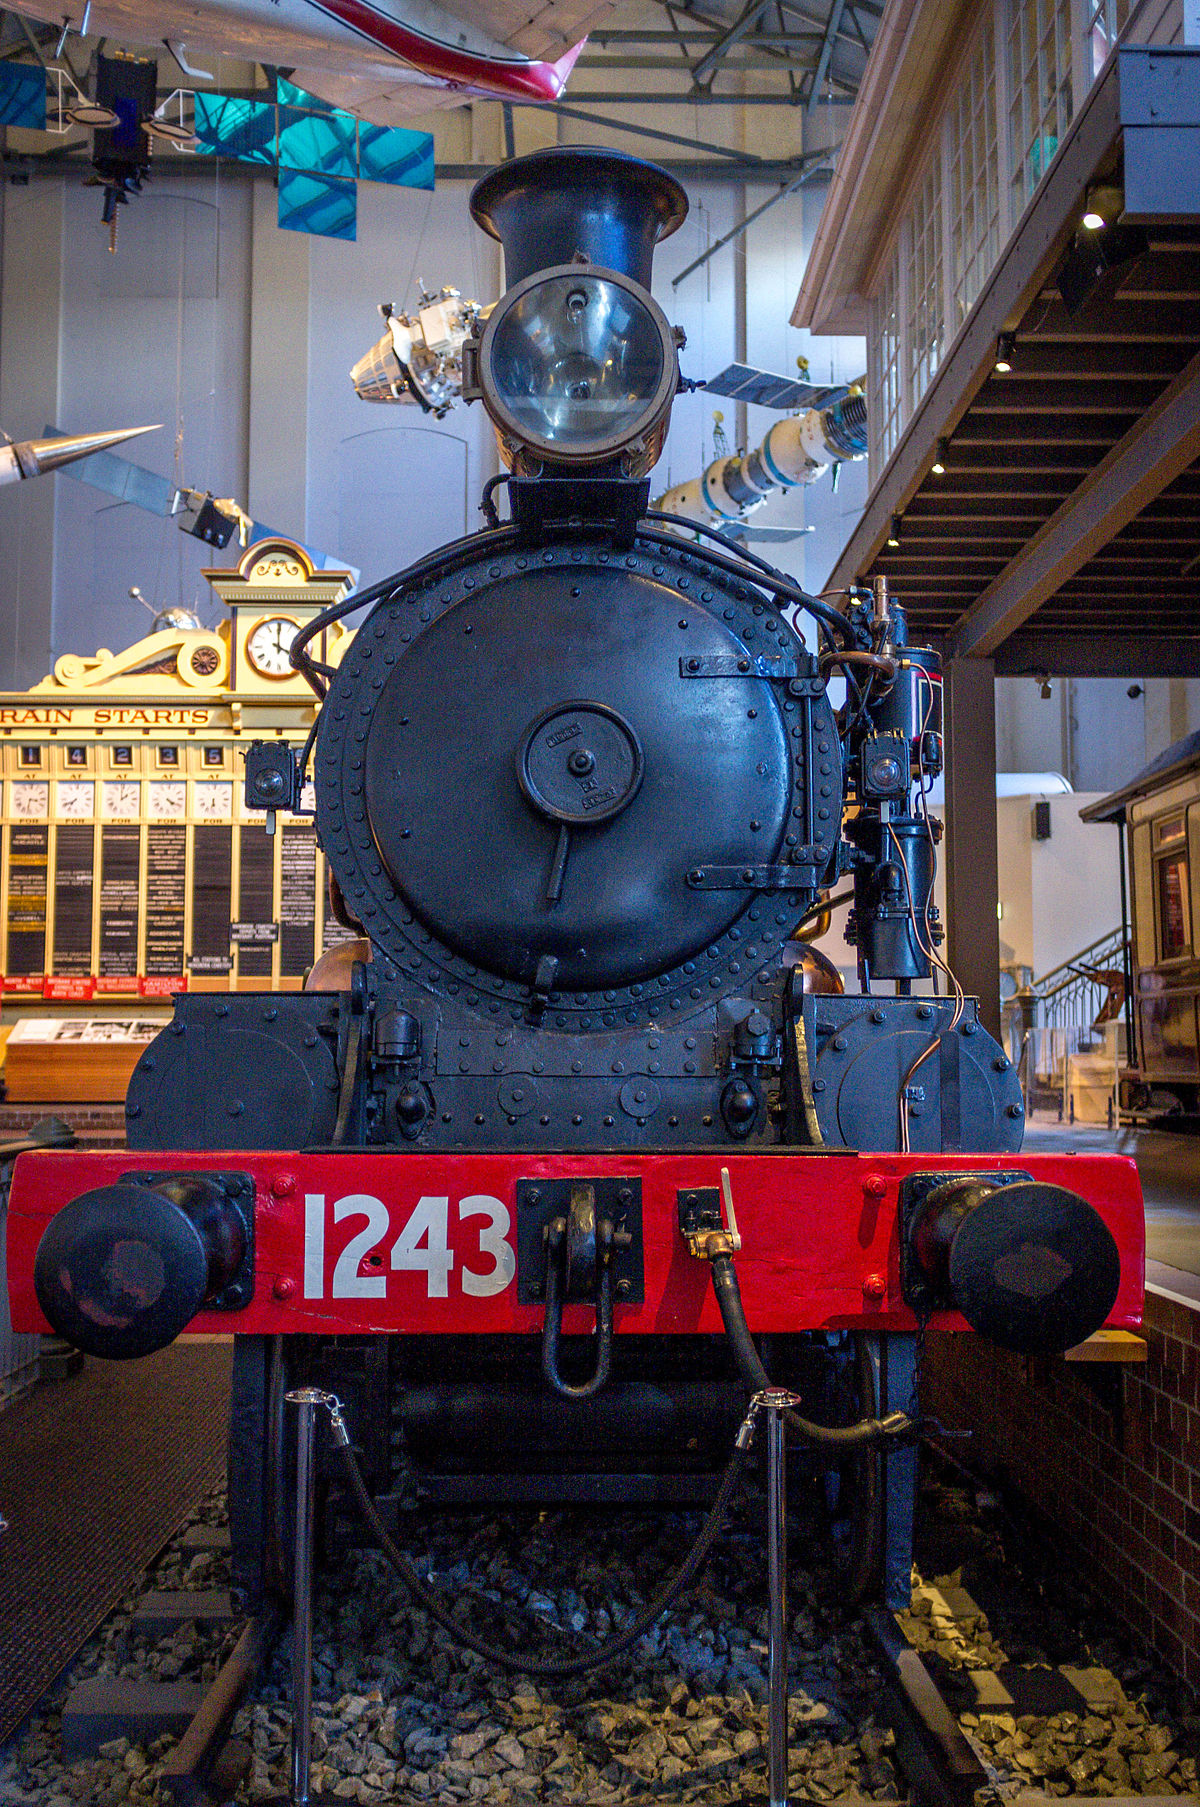 Px Nswgr Locomotive C on How A Steam Locomotive Works